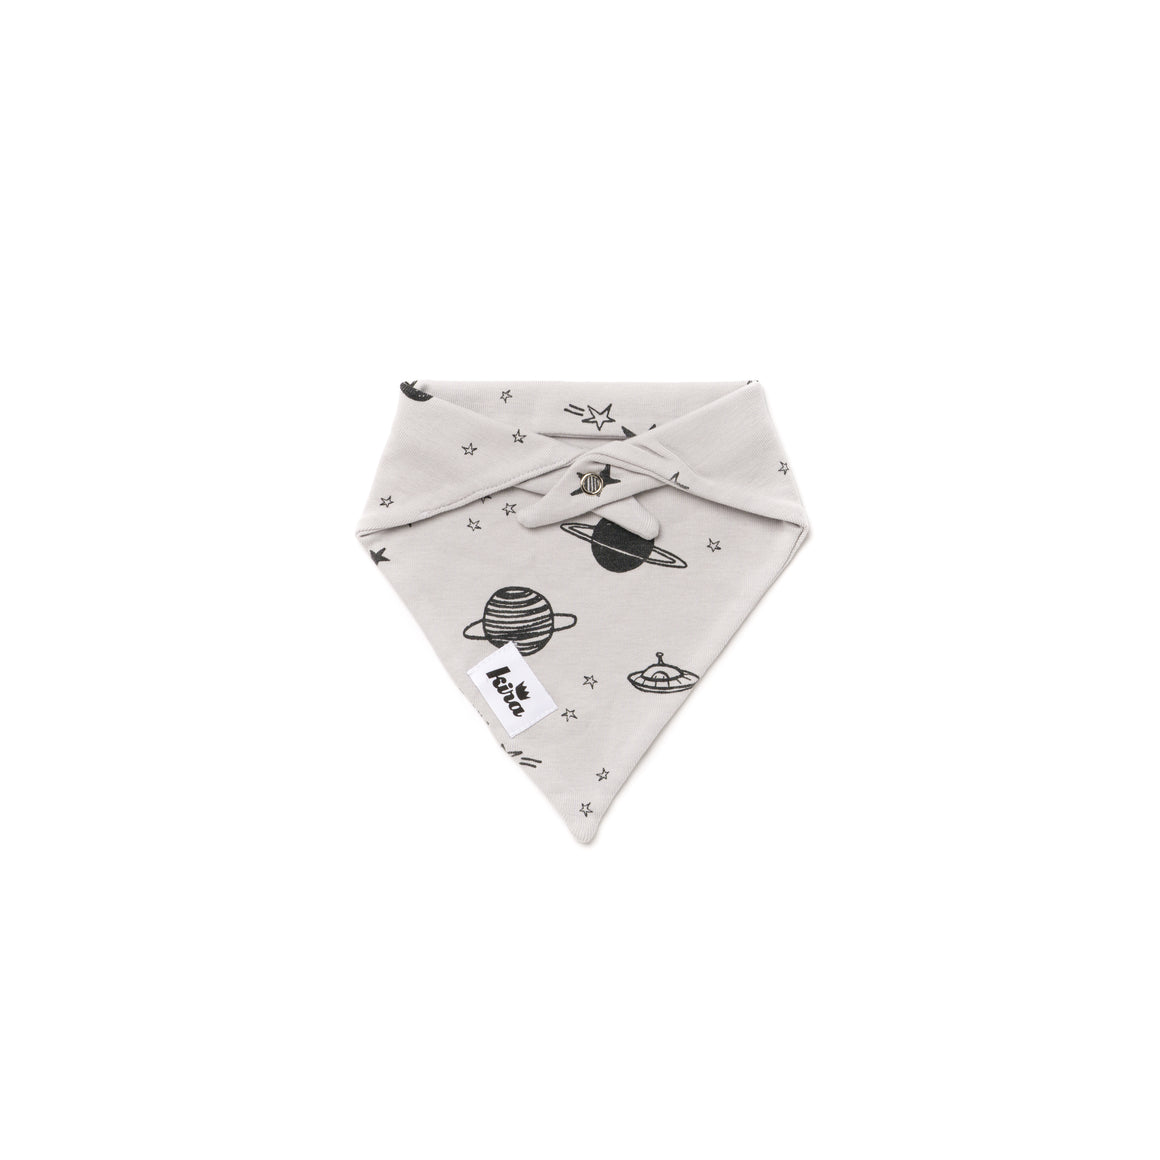 Cosmos Print Bandana Bib, Light Grey